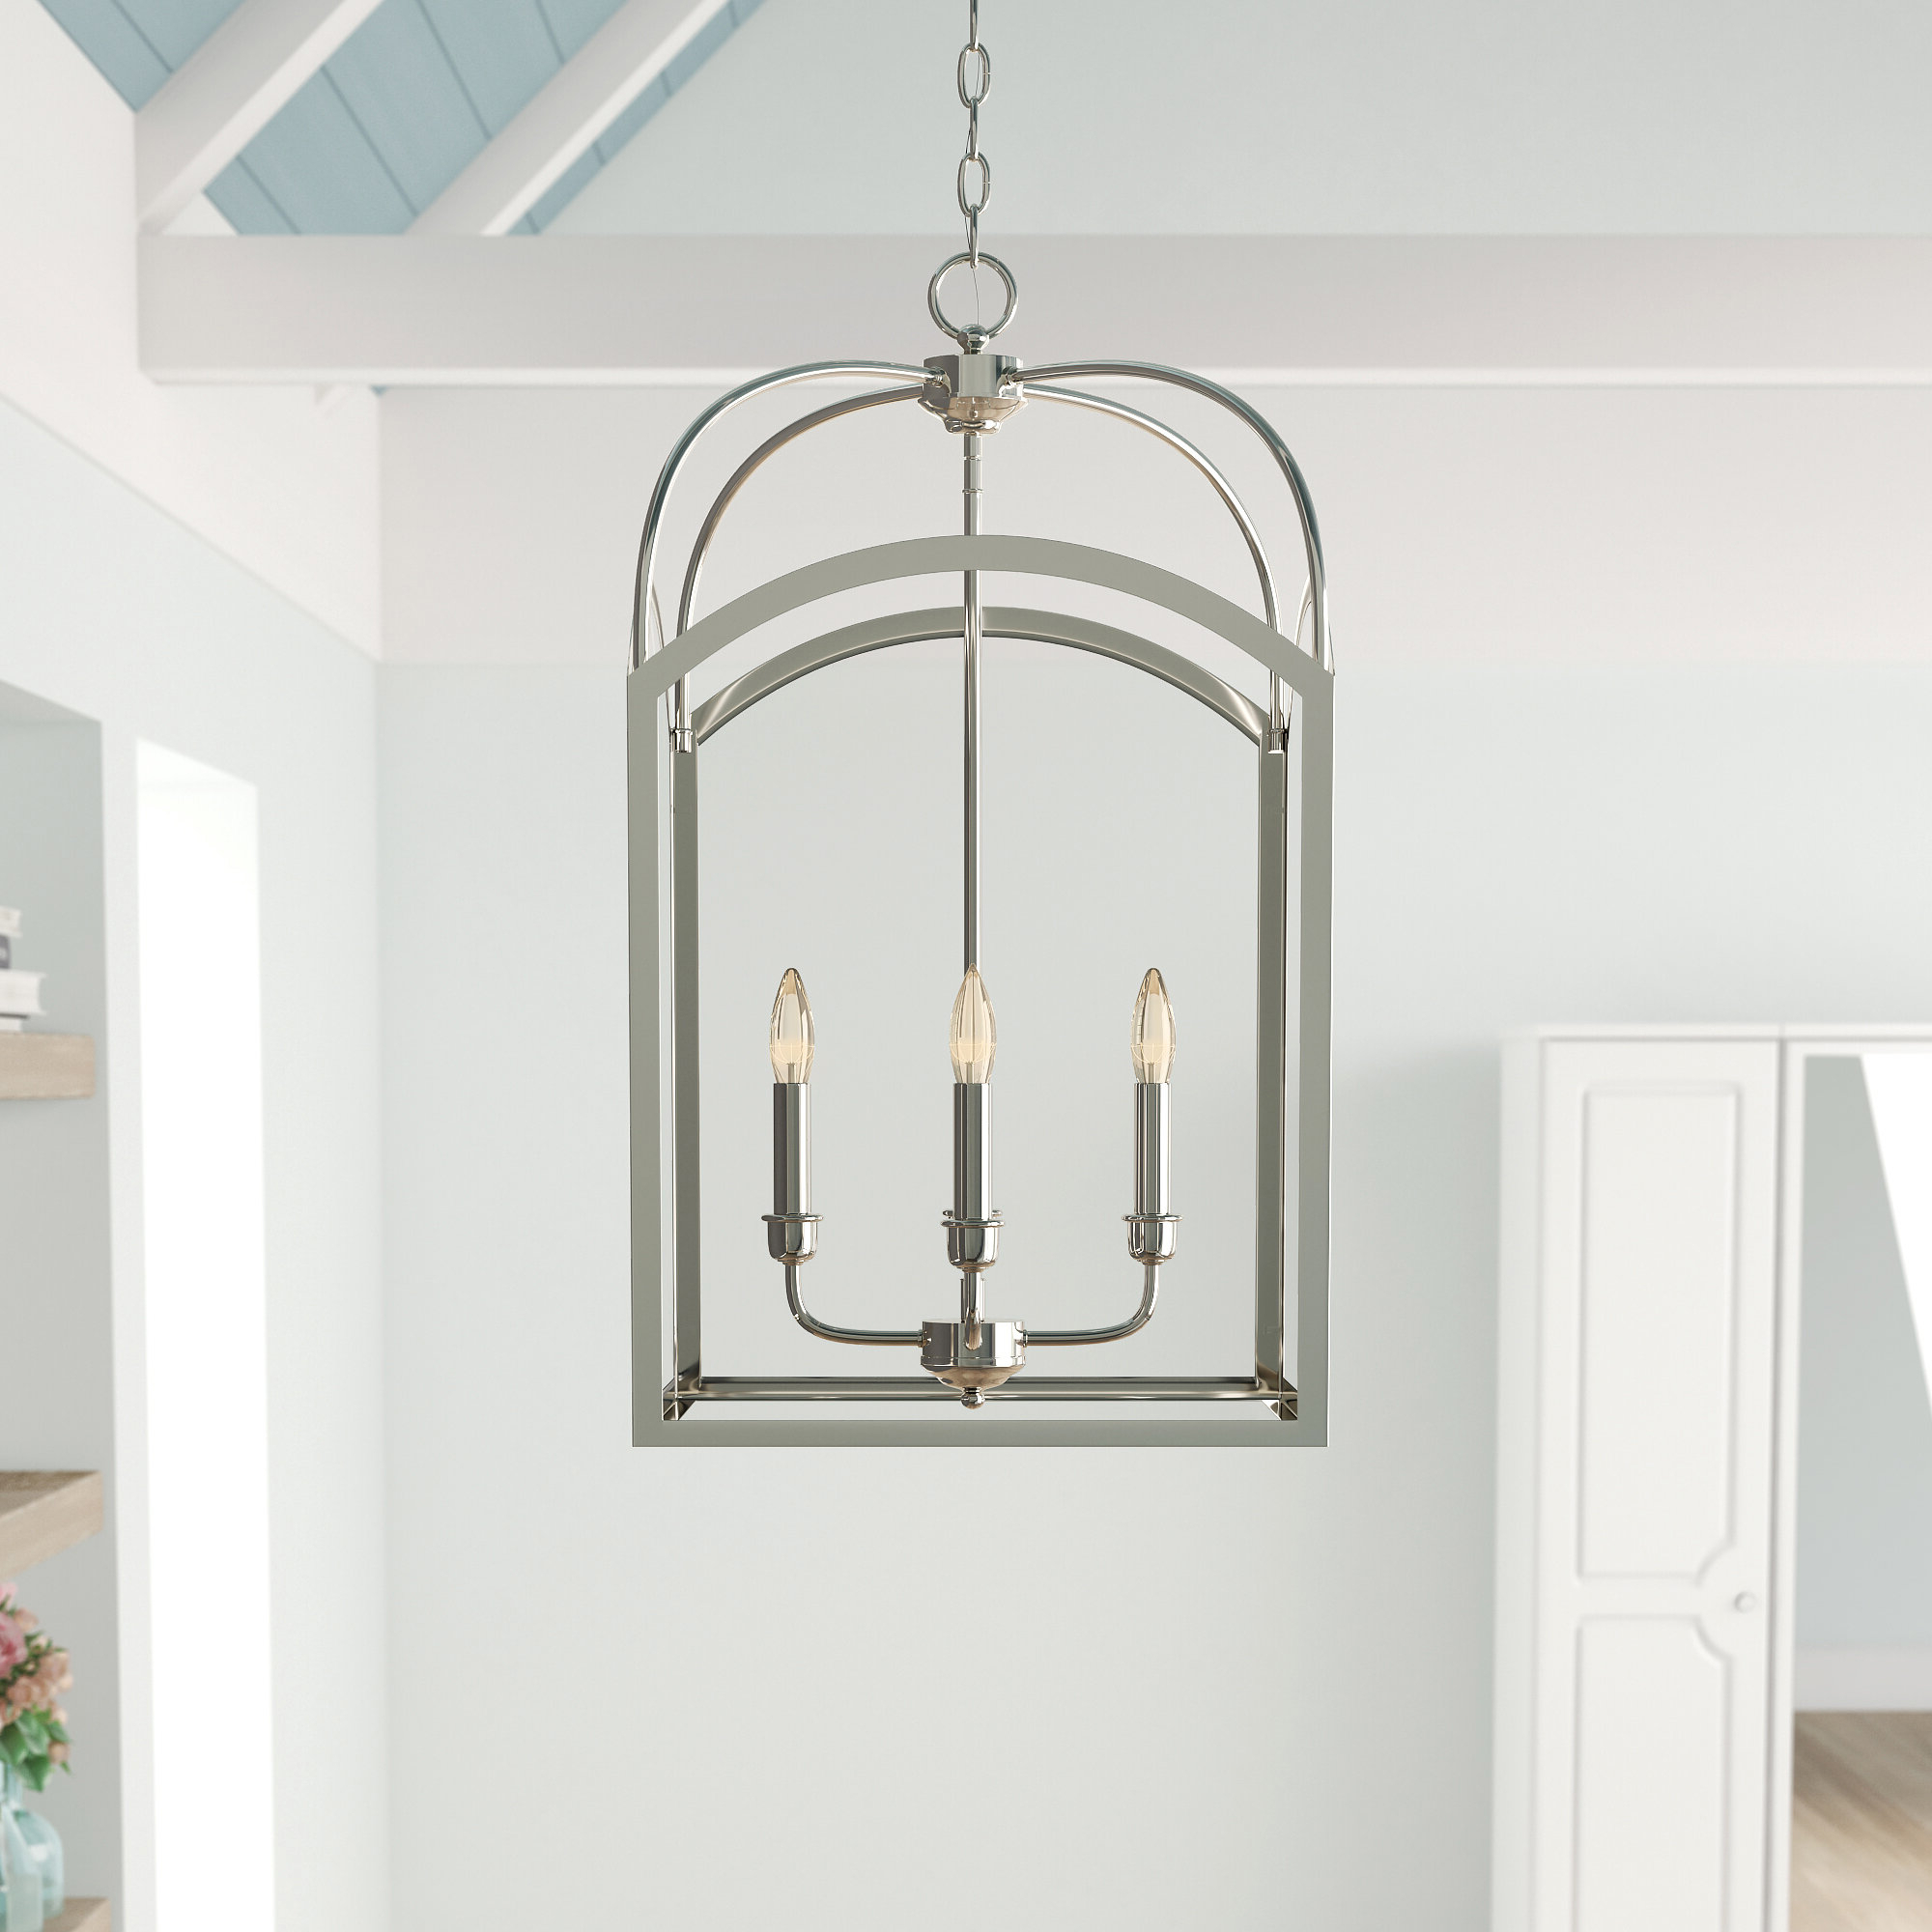 Mount Airy 4 Light Lantern Geometric Pendant With Most Recent Kierra 4 Light Unique / Statement Chandeliers (View 19 of 25)